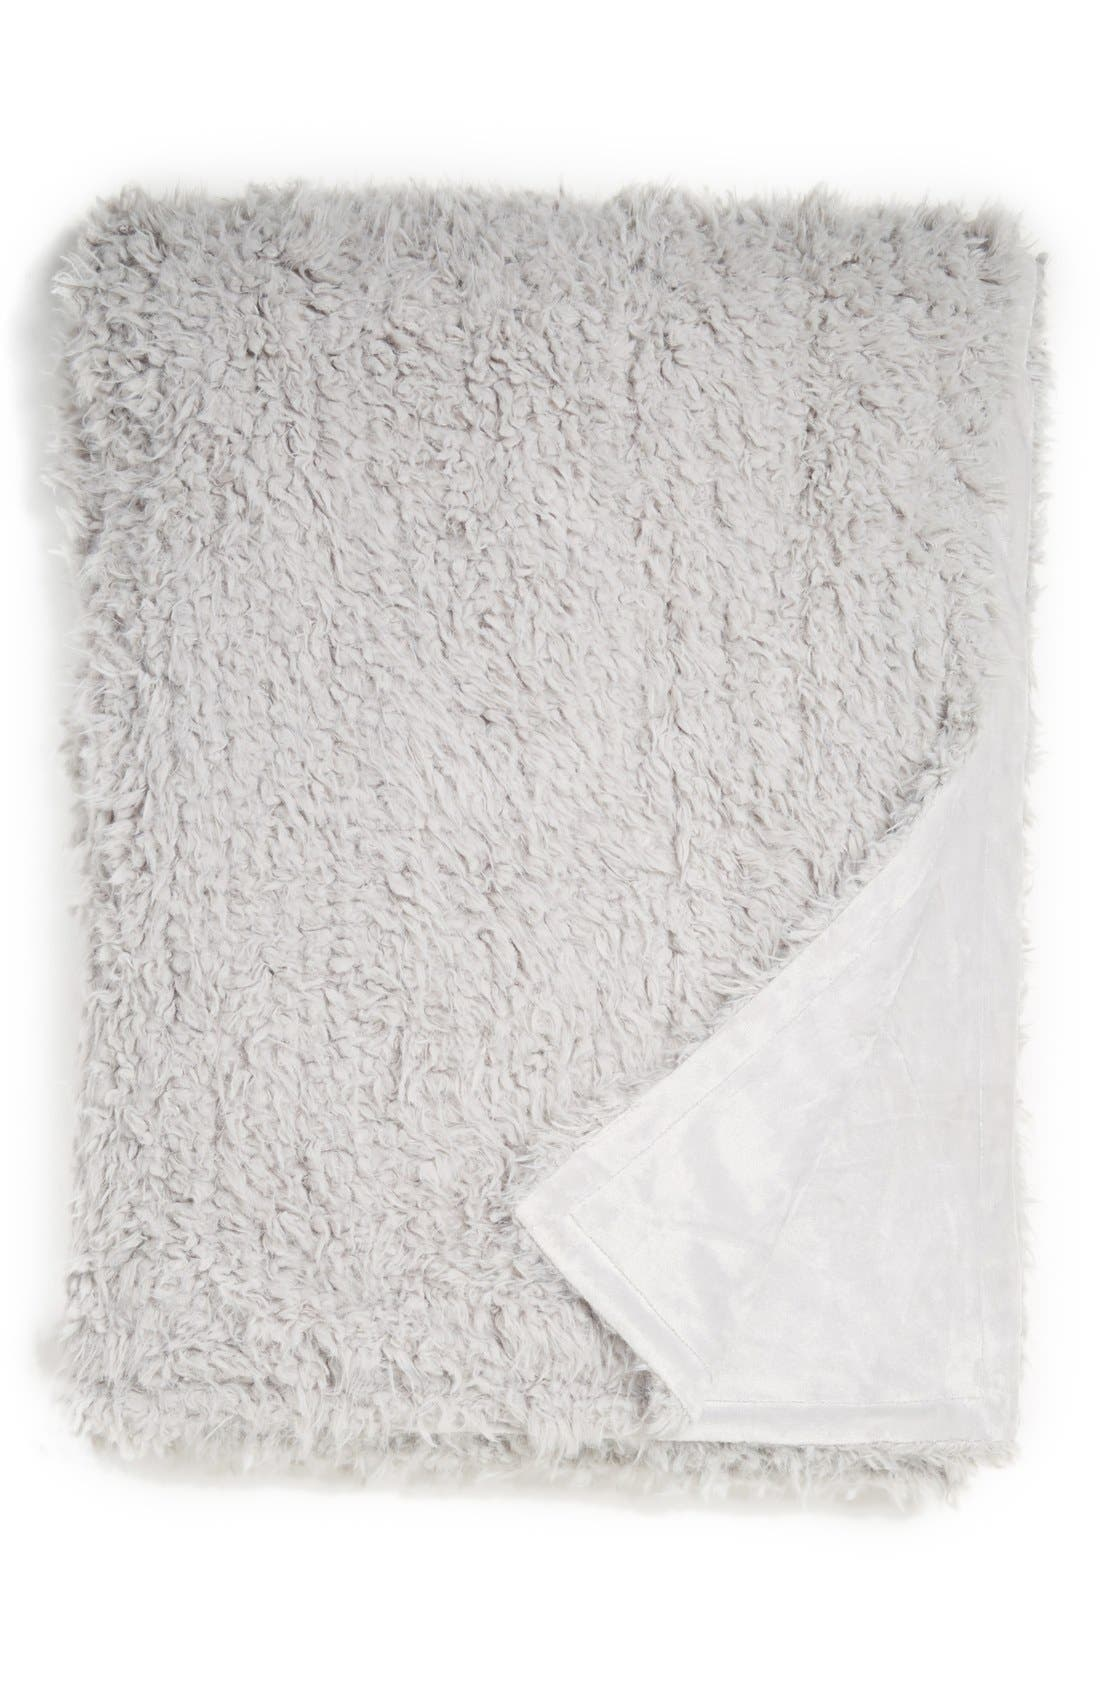 Main Image - Nordstrom at Home 'Shaggy Plush' Faux Fur Blanket